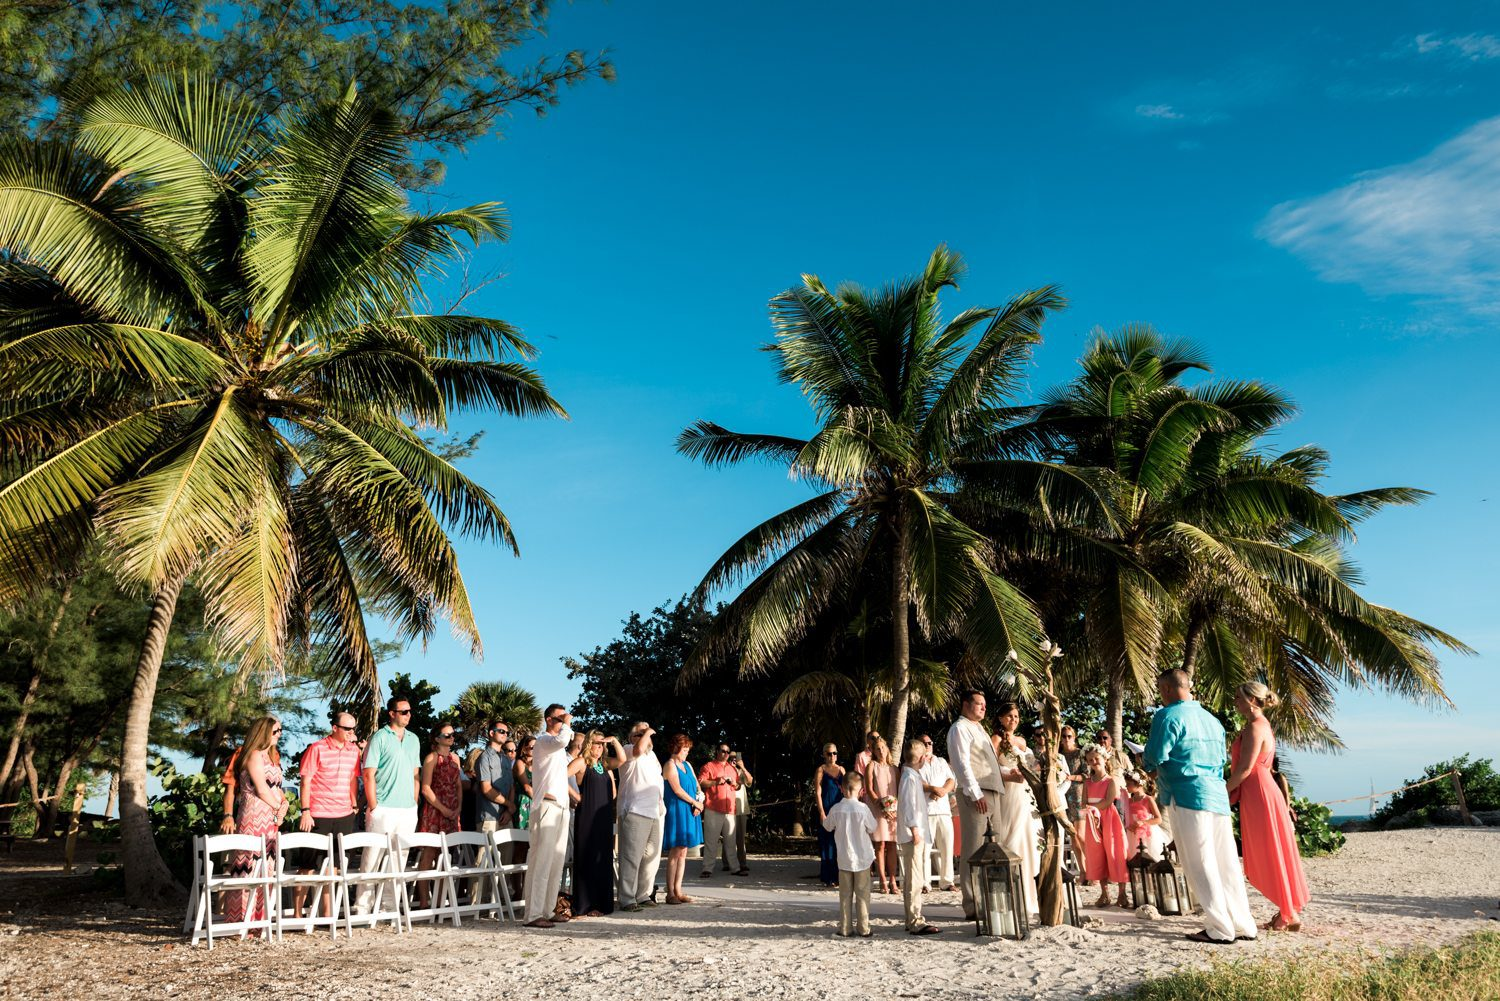 Erin Colin Fort Zachary Taylor Rooftop Cafe Key West Wedding Photographer 34 - Erin & Colin   Key West Wedding Photographer   Fort Zachary Taylor